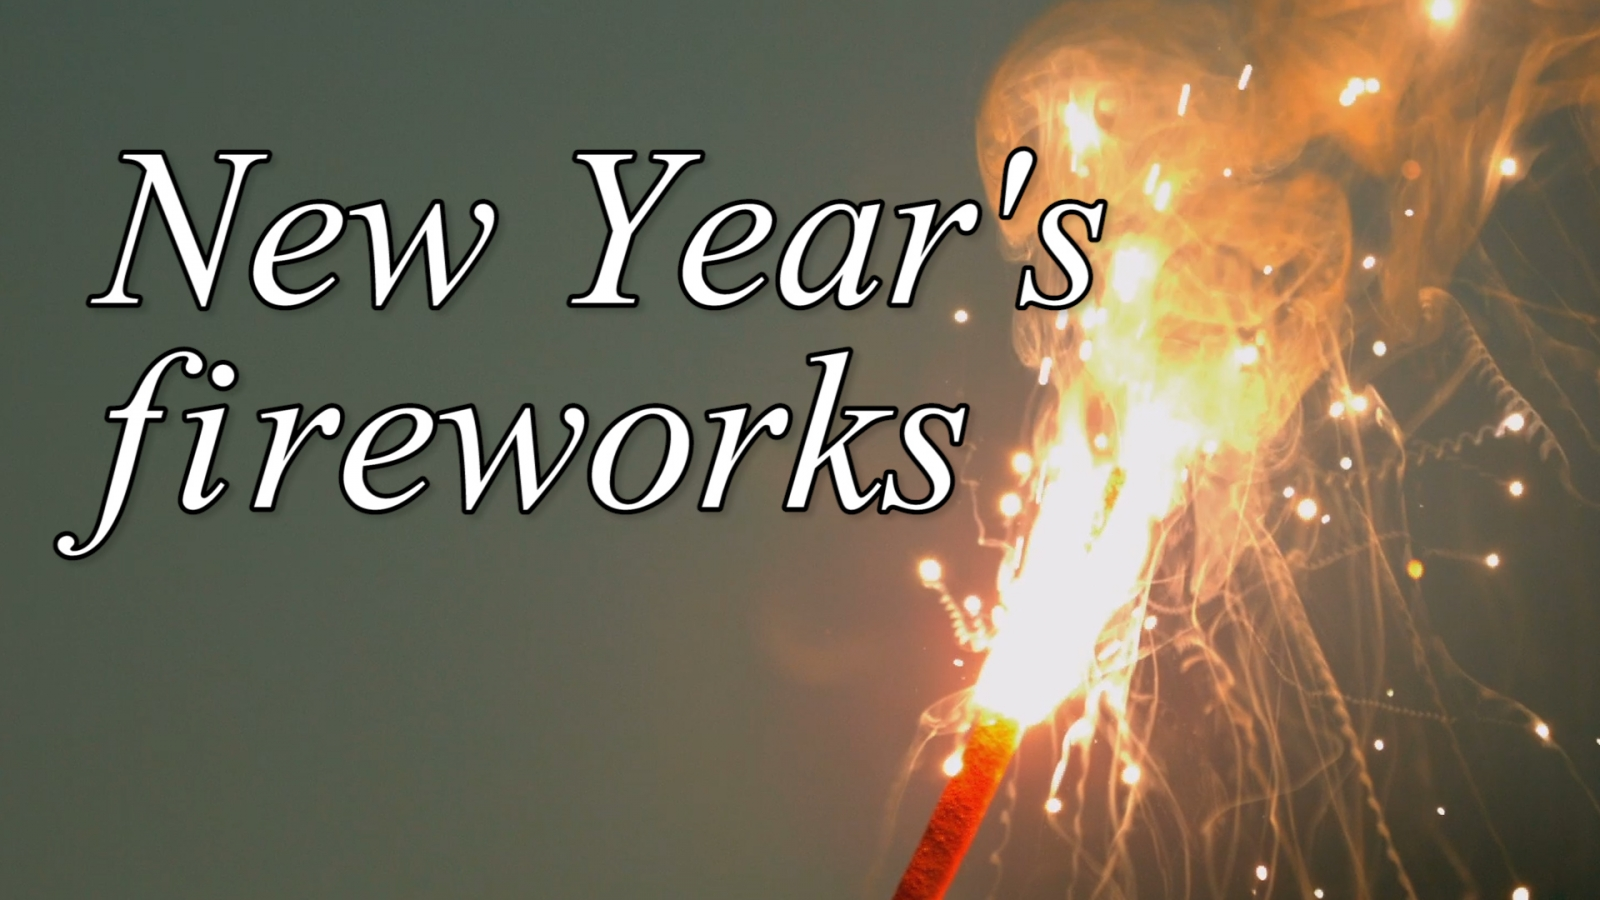 Happy New Year 2017 Top Quotes And Messages To Wish Your Friends